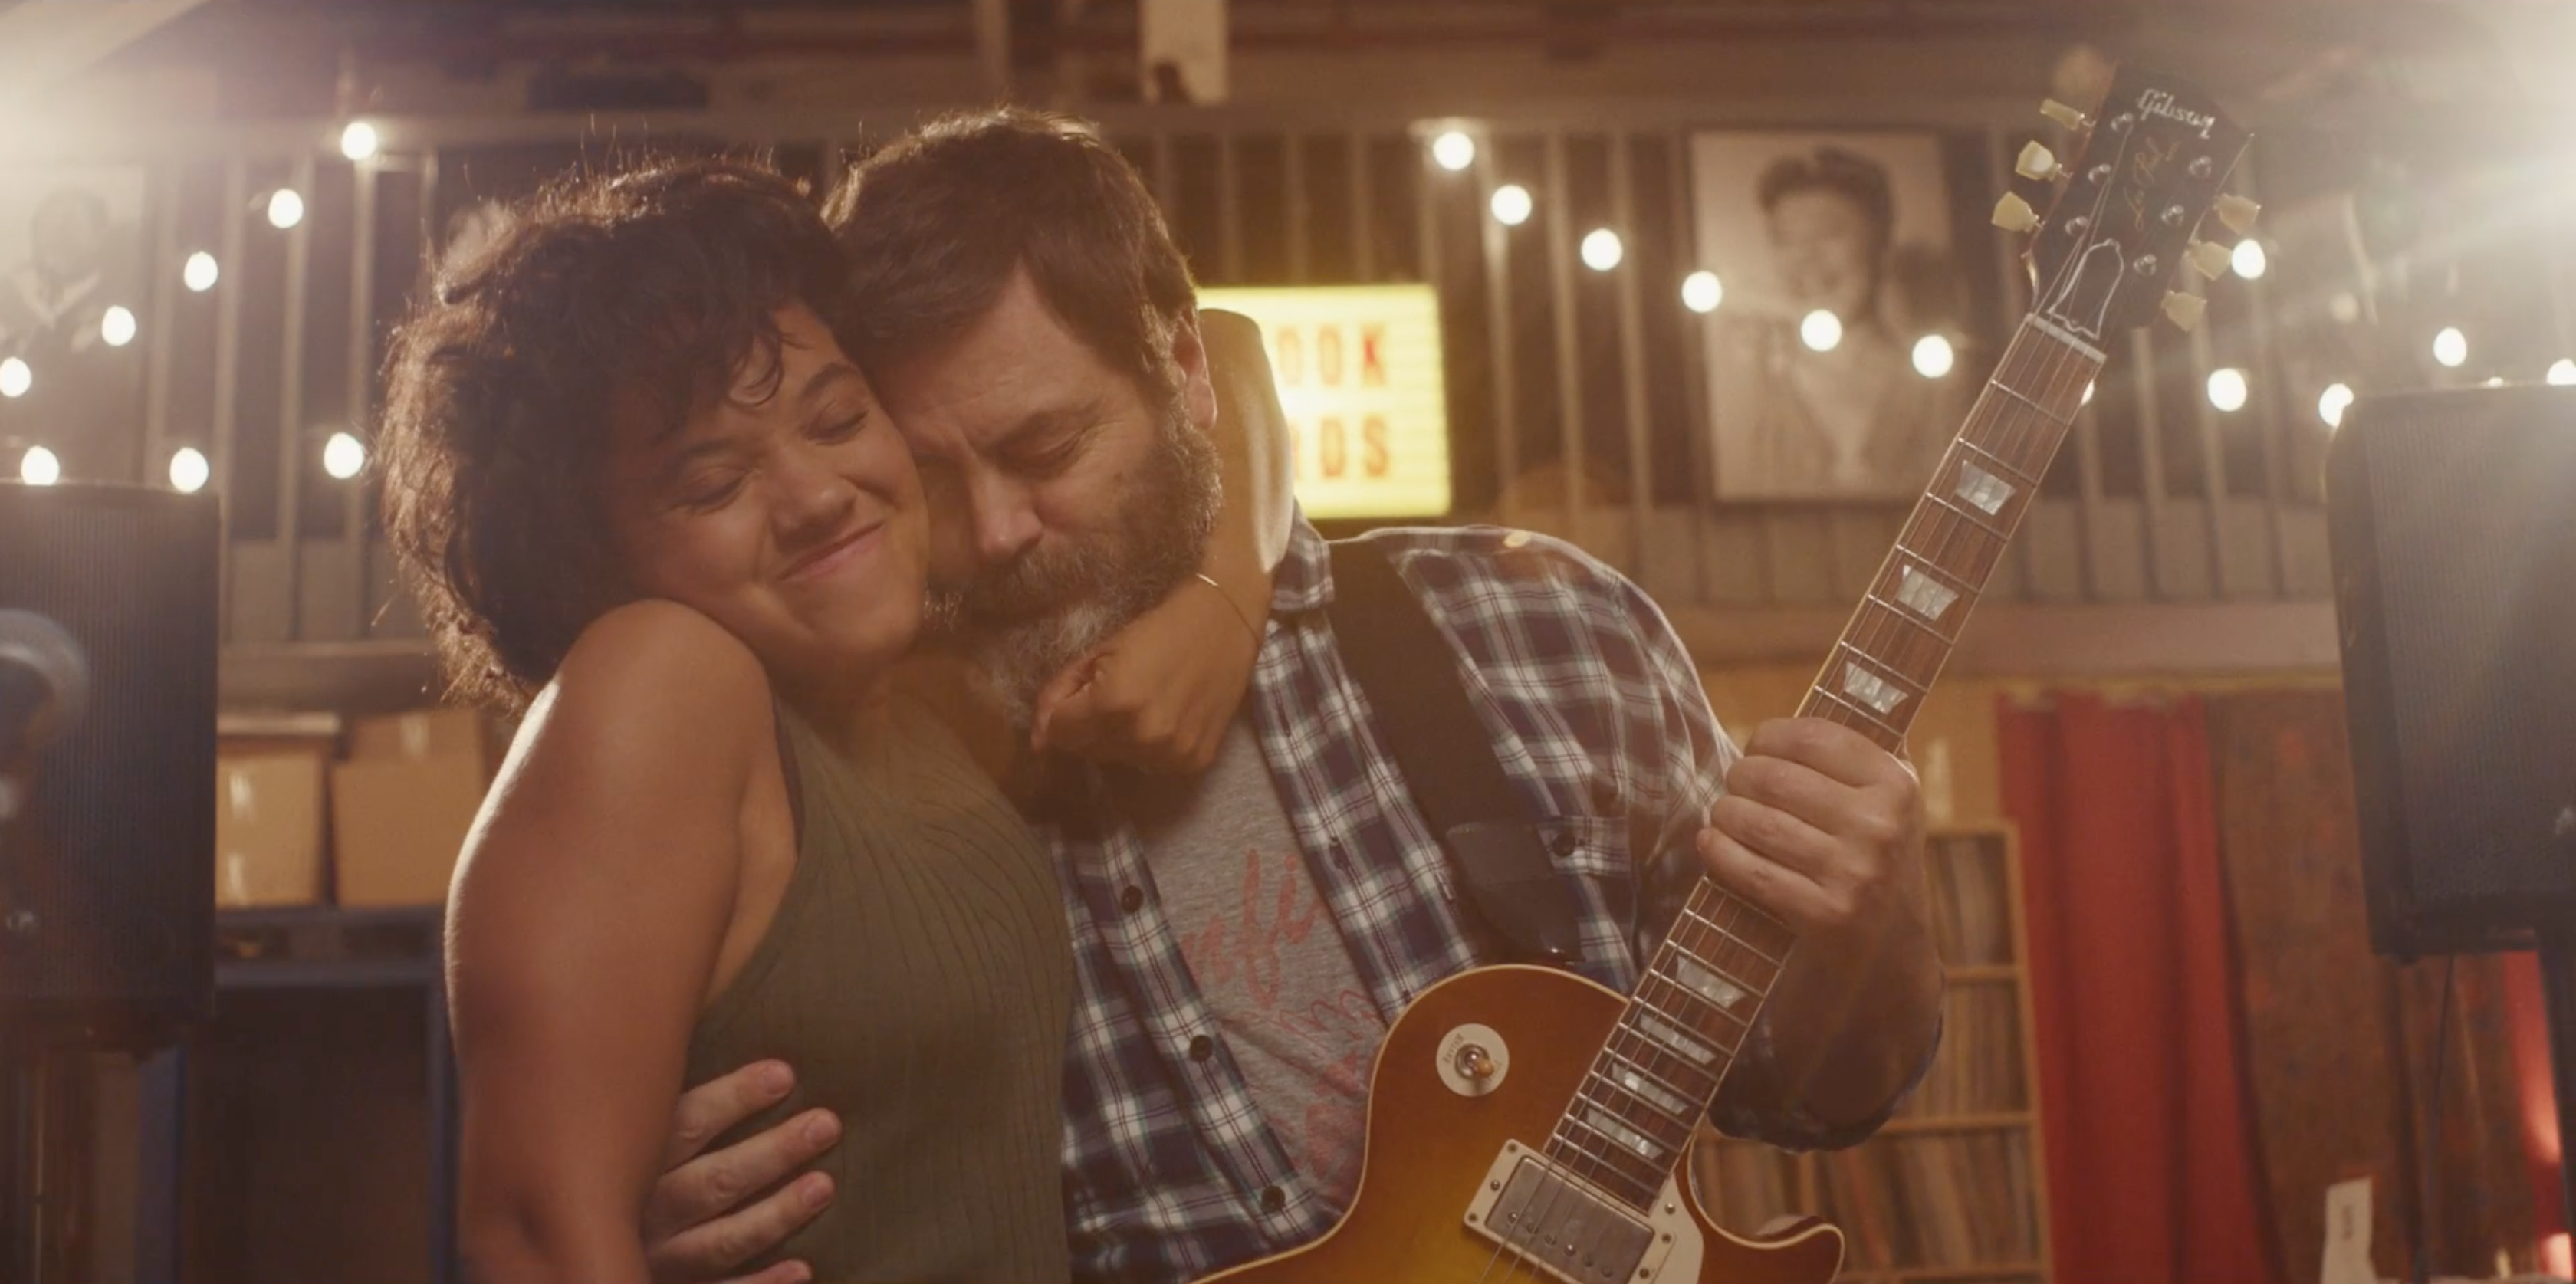 Kiersey Clemons and Nick Offerman in Hearts Beat Loud